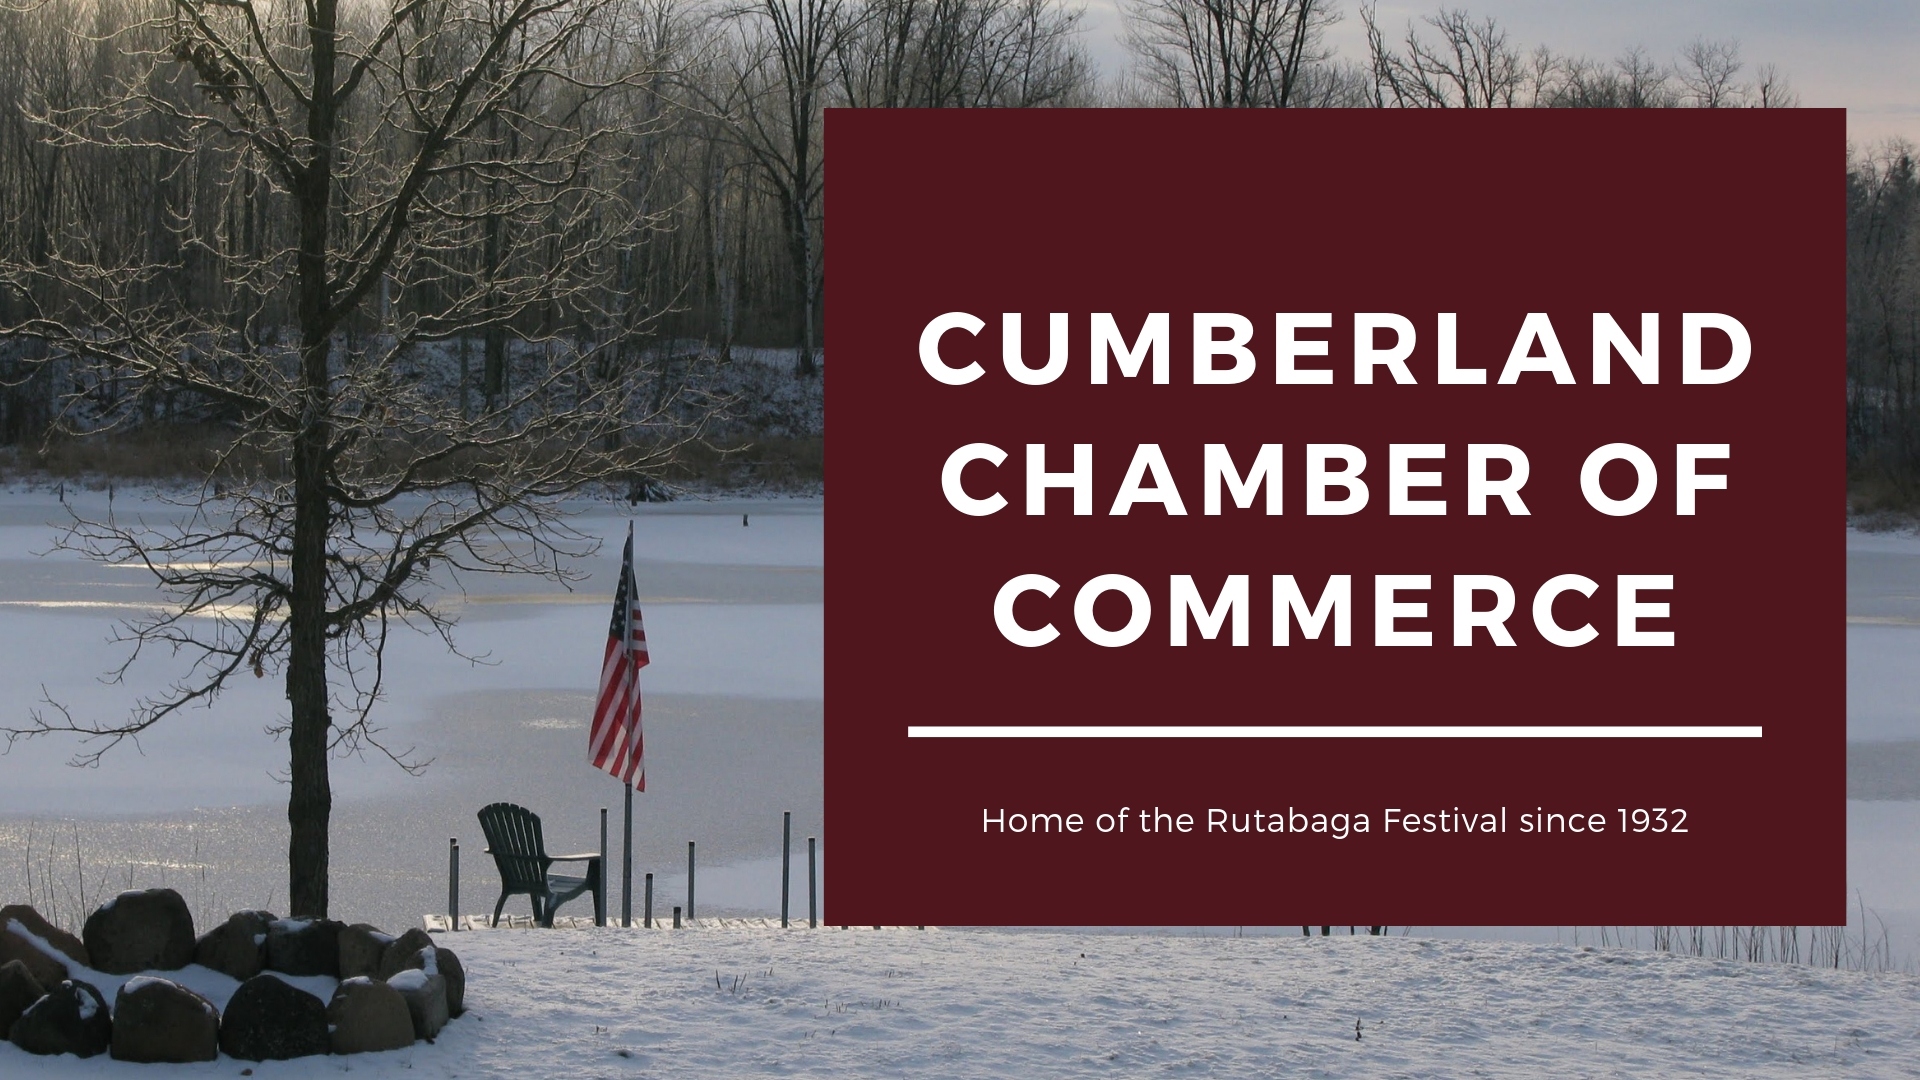 Cumberland-Chamber-of-Commerce.jpg